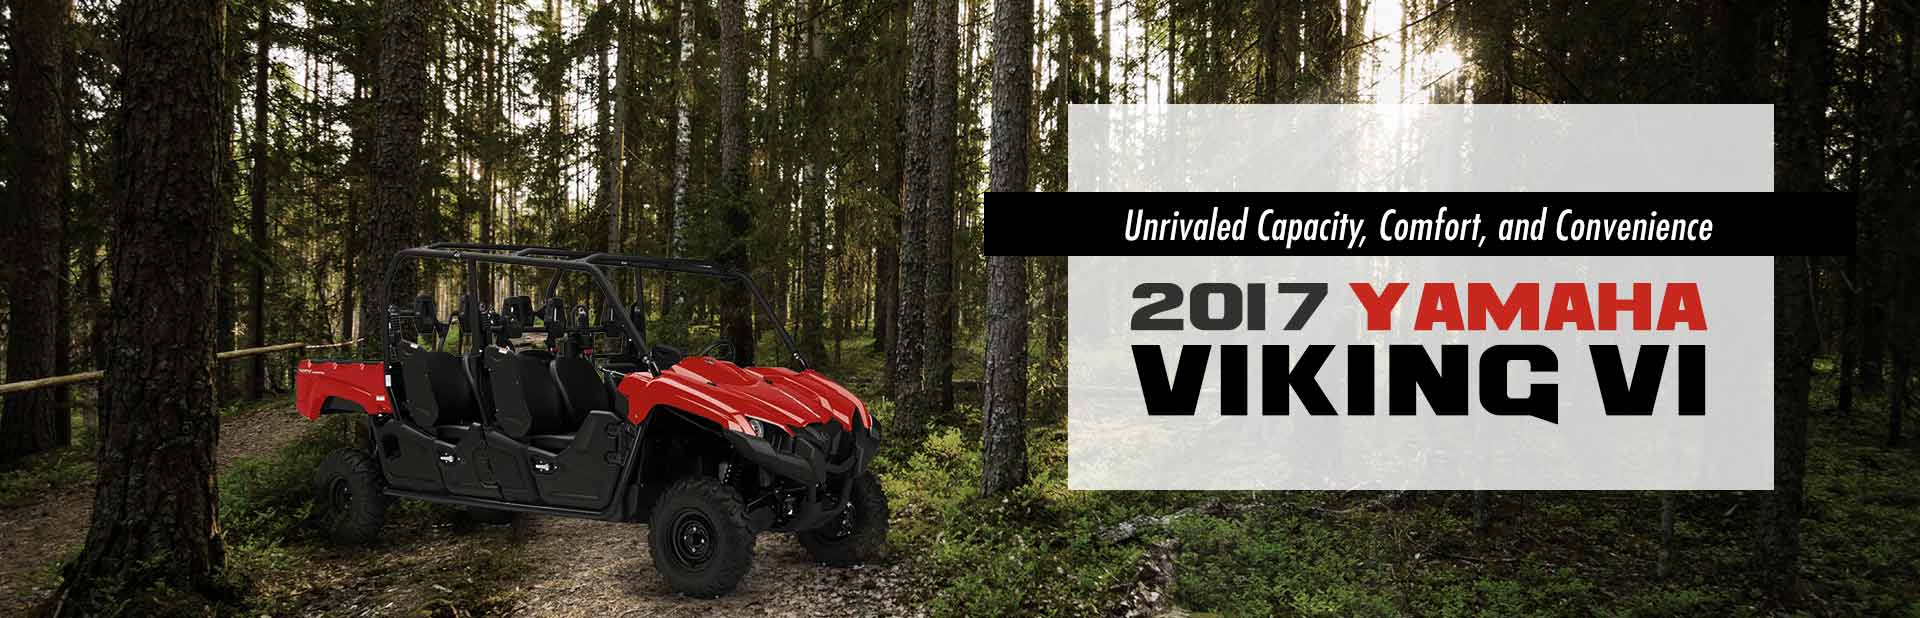 2017 Yamaha Viking VI: Click here to view the models.